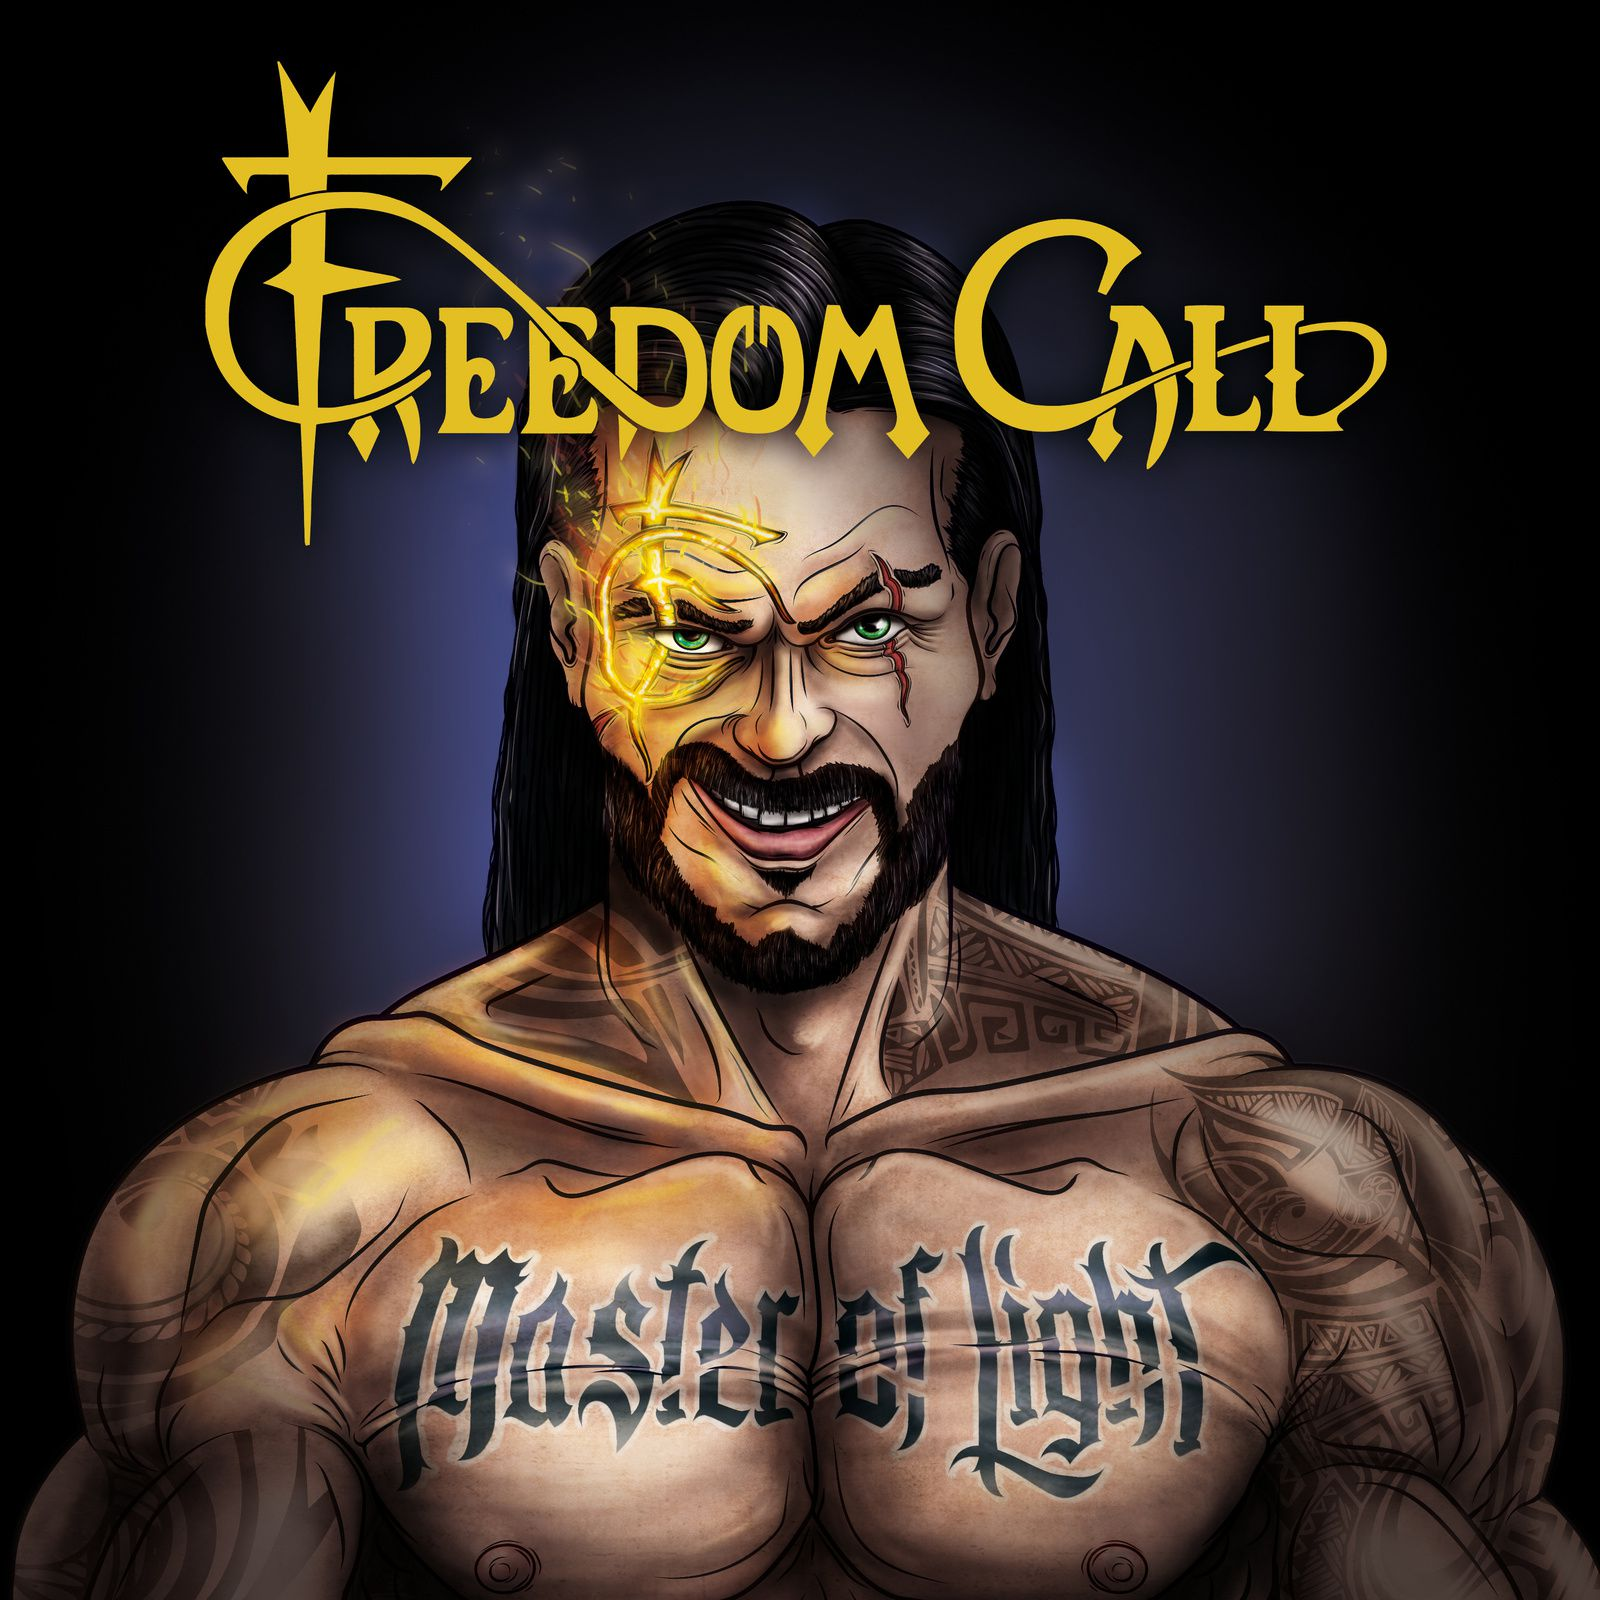 CD review FREEDOM CALL &quot&#x3B;Master of Light&quot&#x3B;